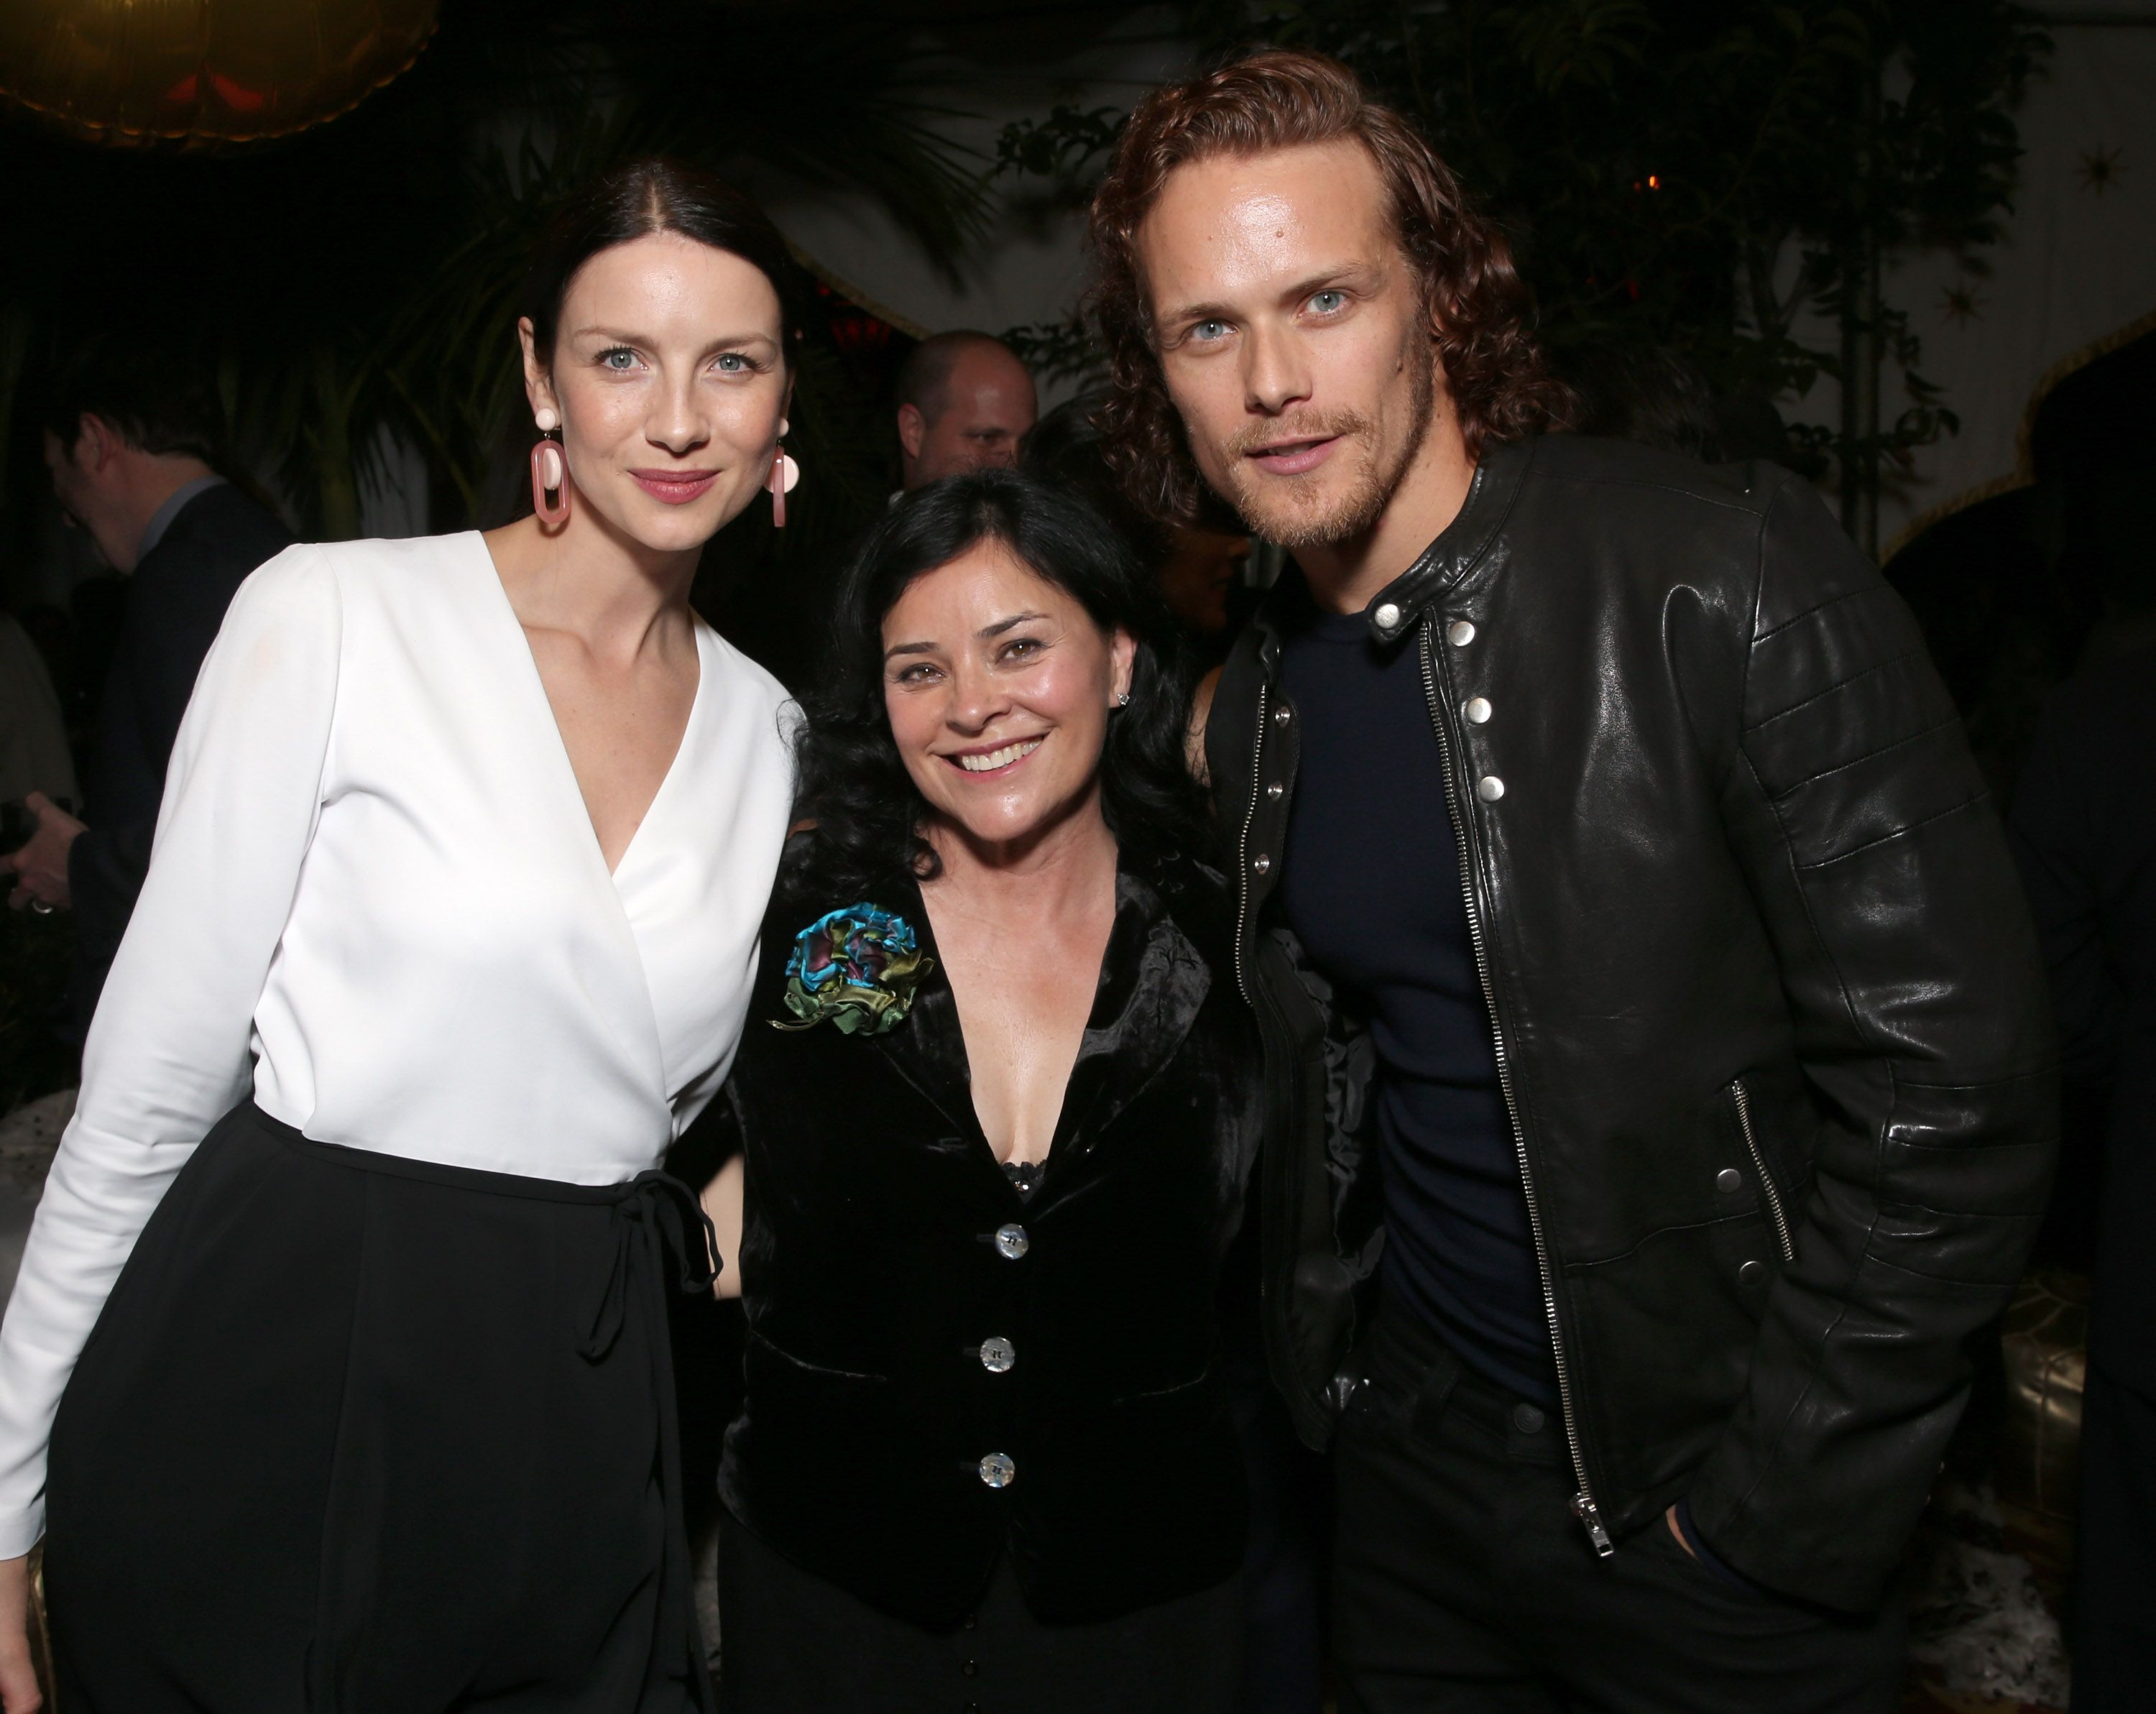 Outlander Is a Finalist in Great American Read - Diana Gabaldon on